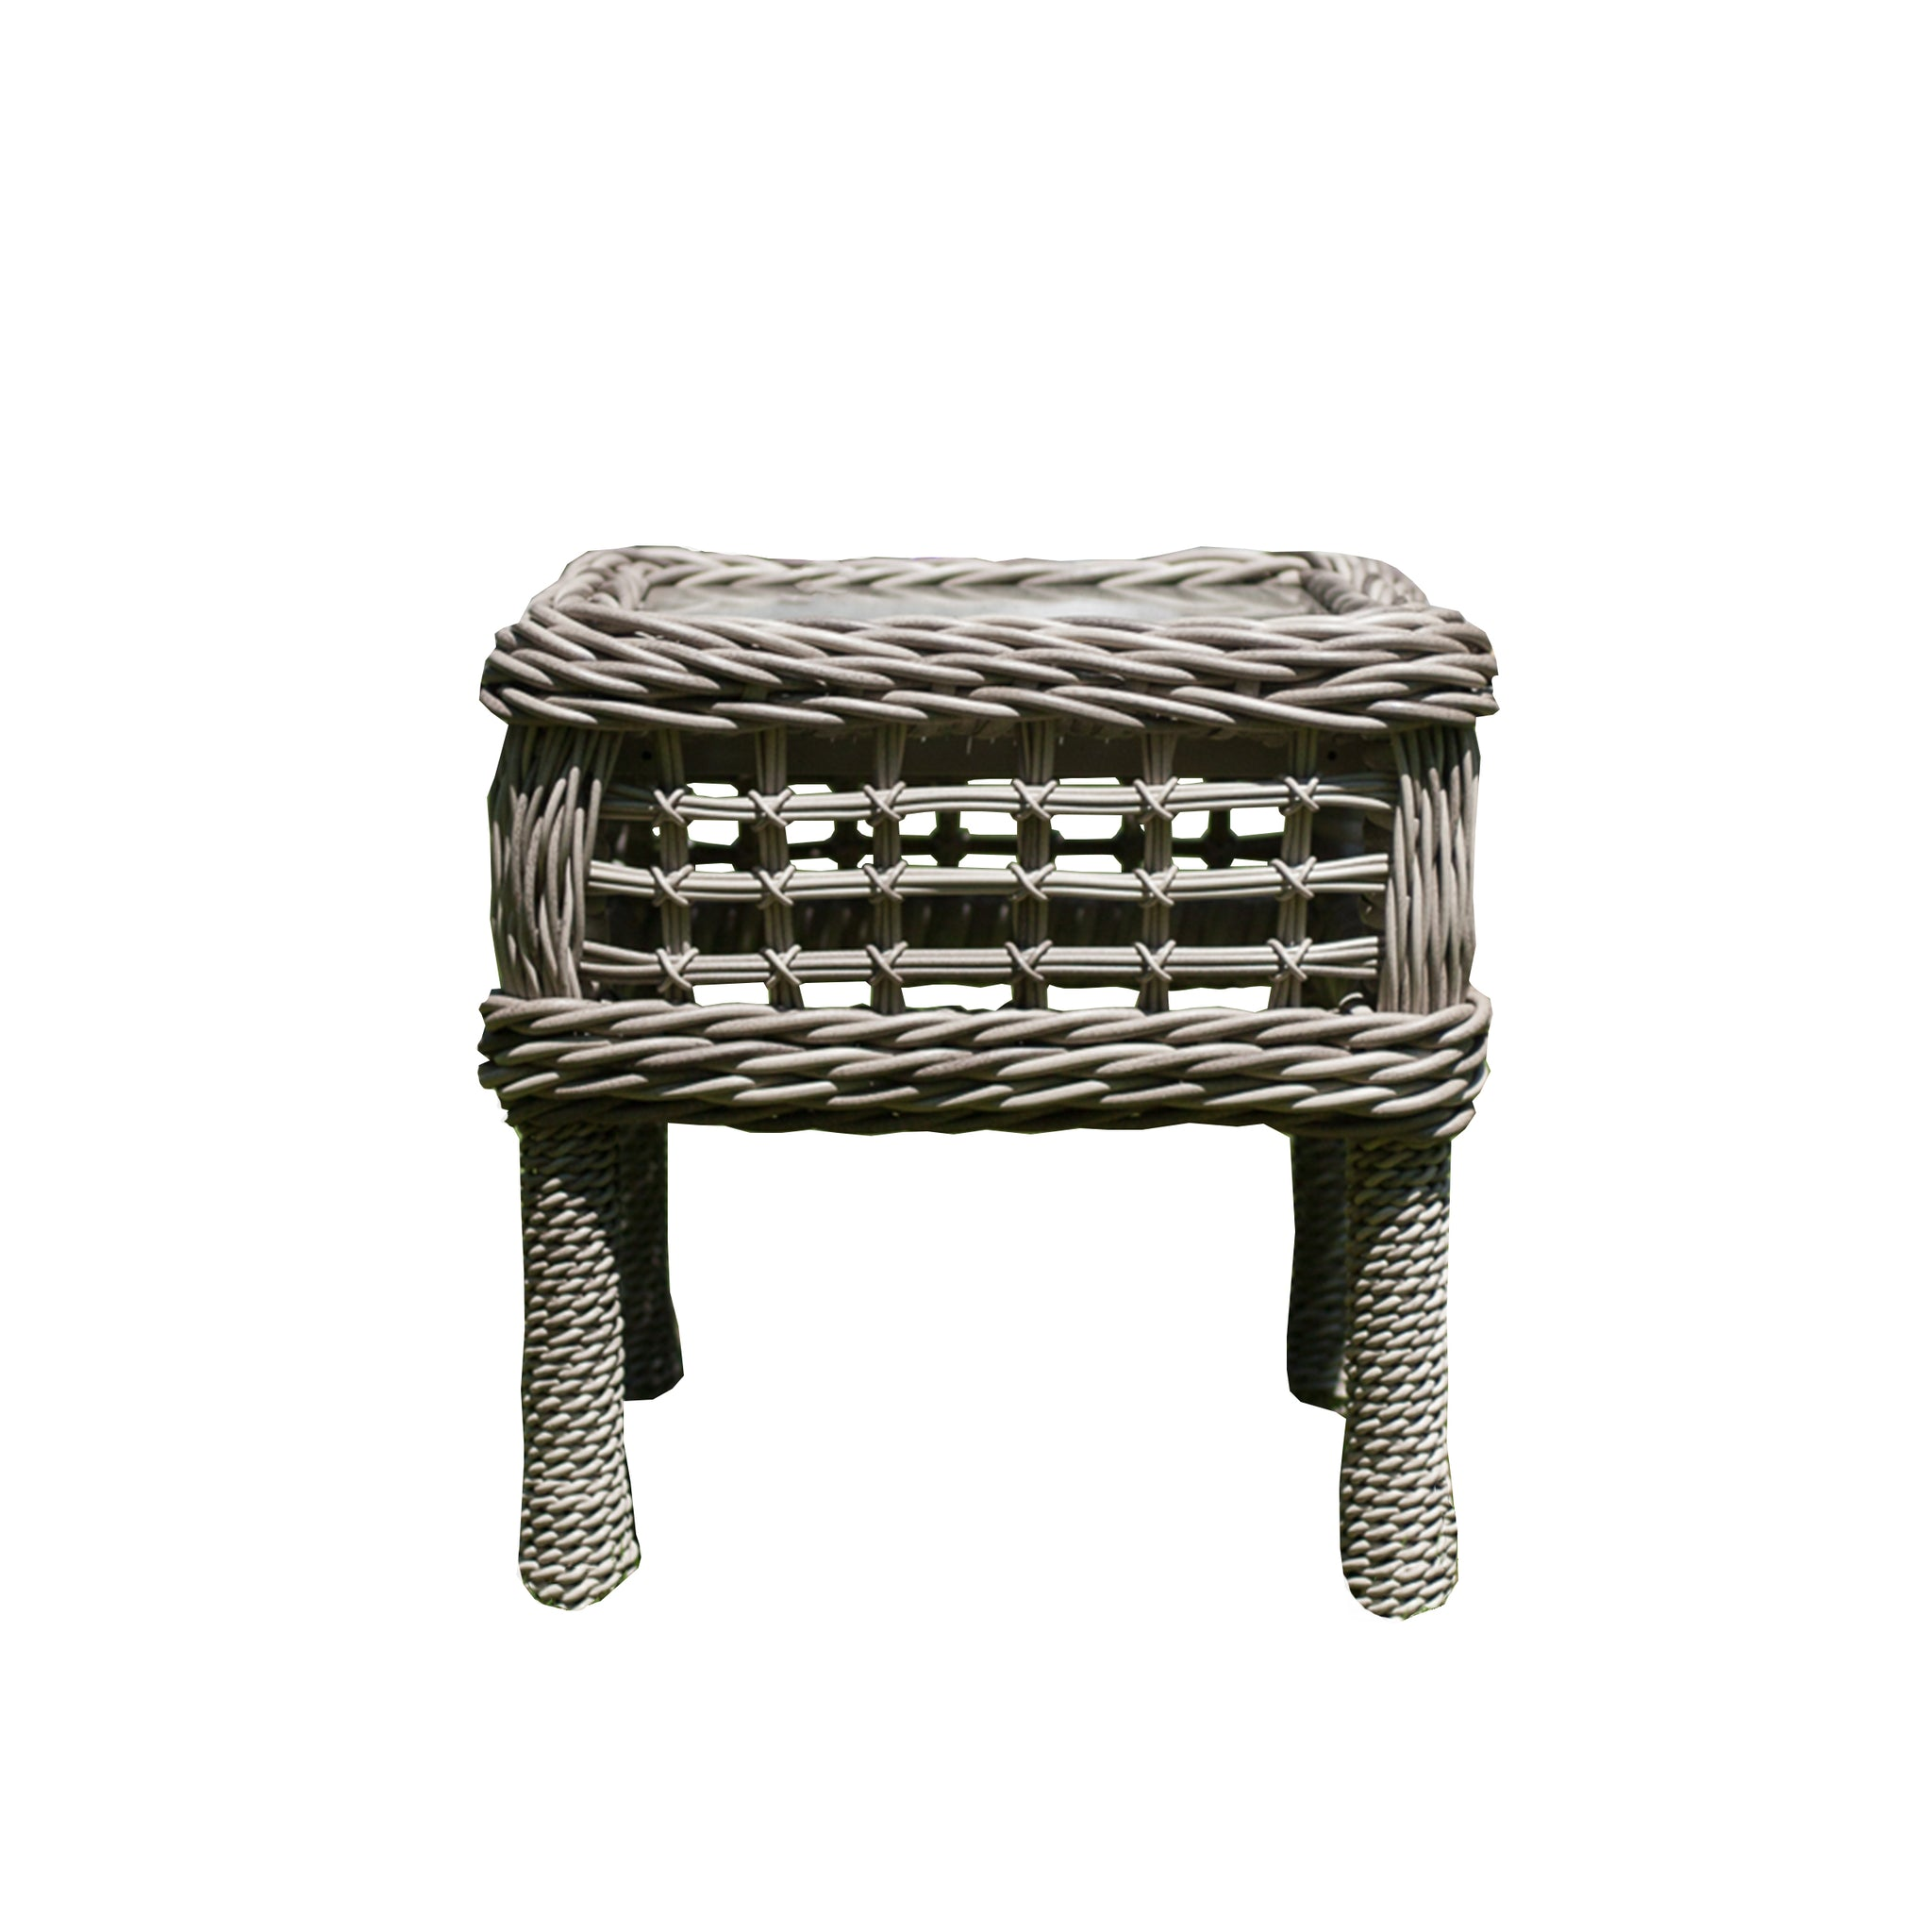 Moraya Bay Accent Table by Lane Venture in Oyster finish with glass insert